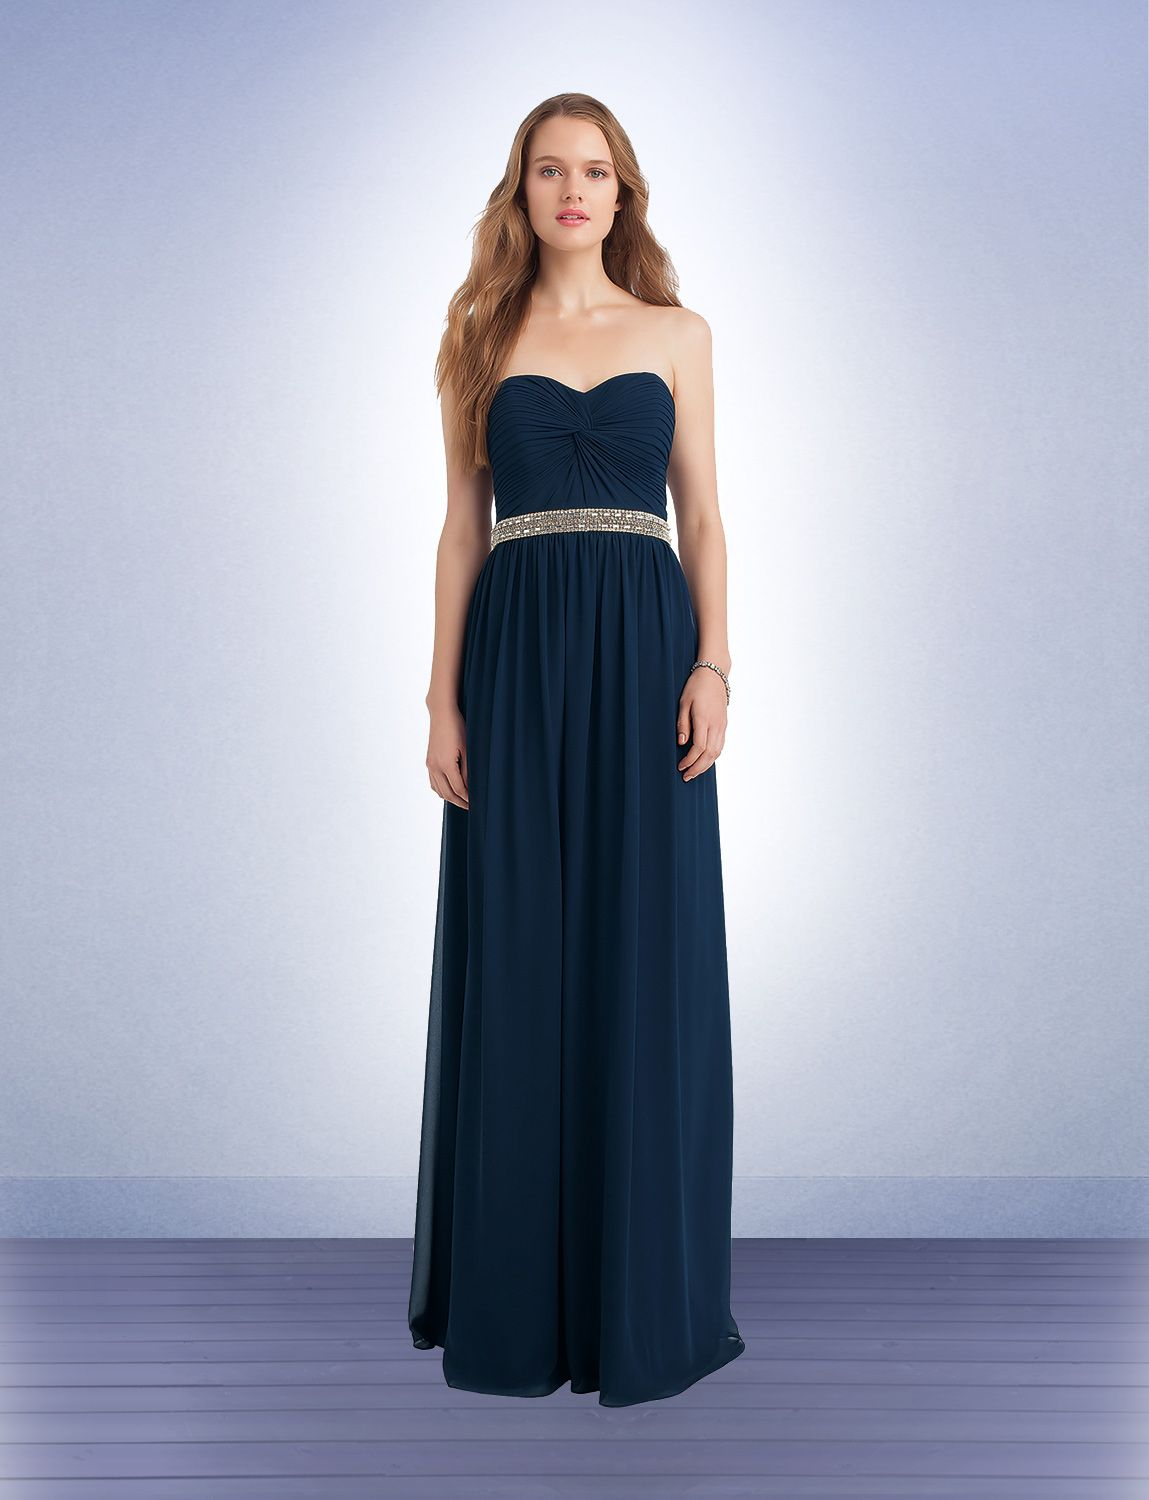 A little bling bridesmaid dress style 1135 bridesmaid dresses a little bling bridesmaid dress style 1135 bridesmaid dresses by bill levkoff ombrellifo Gallery